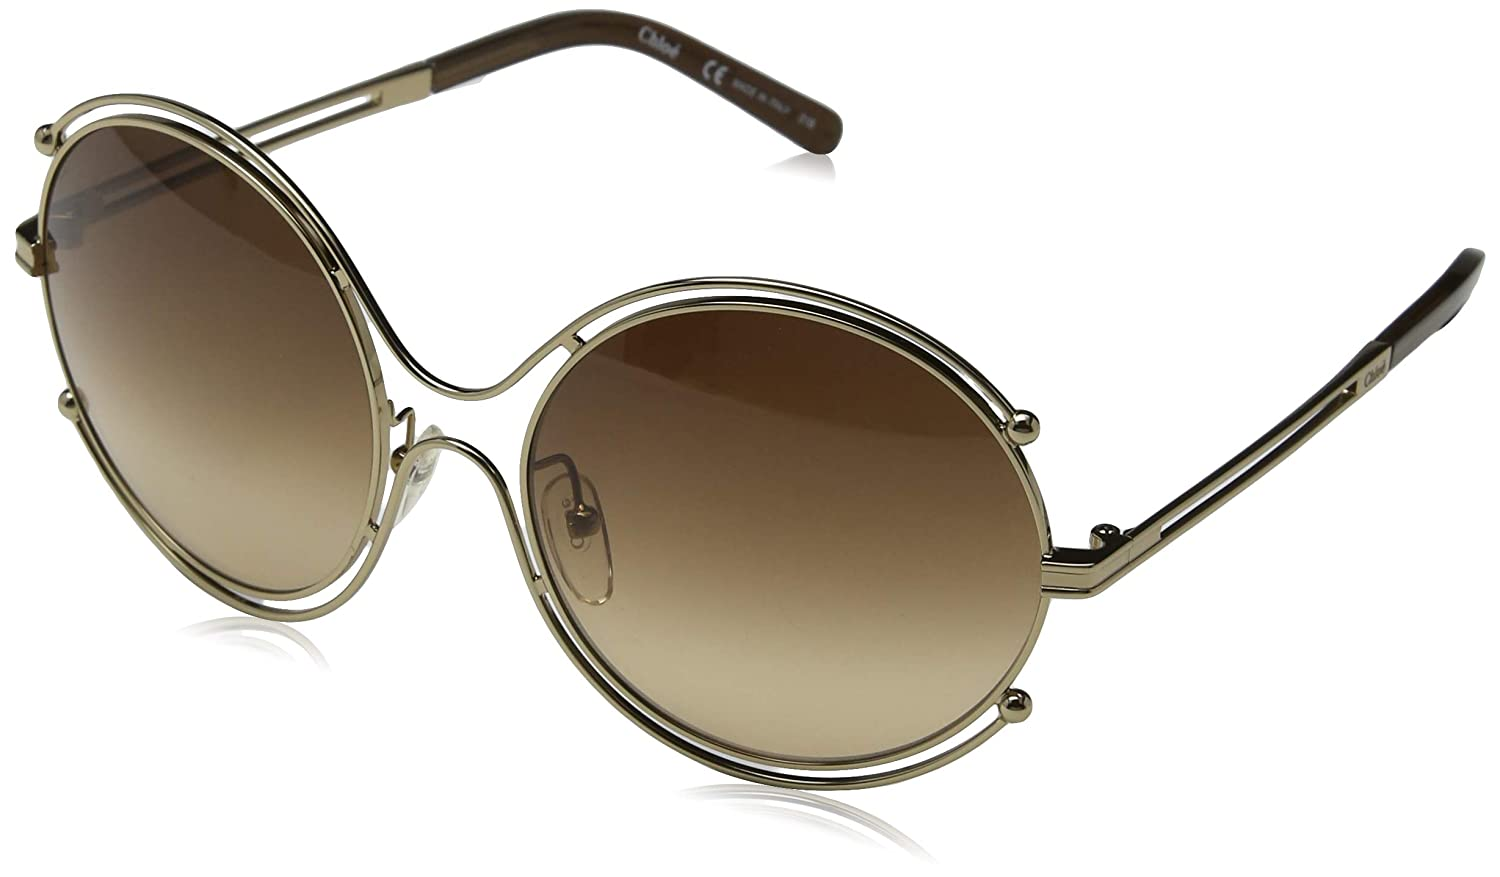 a992c722aff0 Sunglasses CHLOE CE122S 786 ROSE GOLD BROWN at Amazon Men s Clothing store